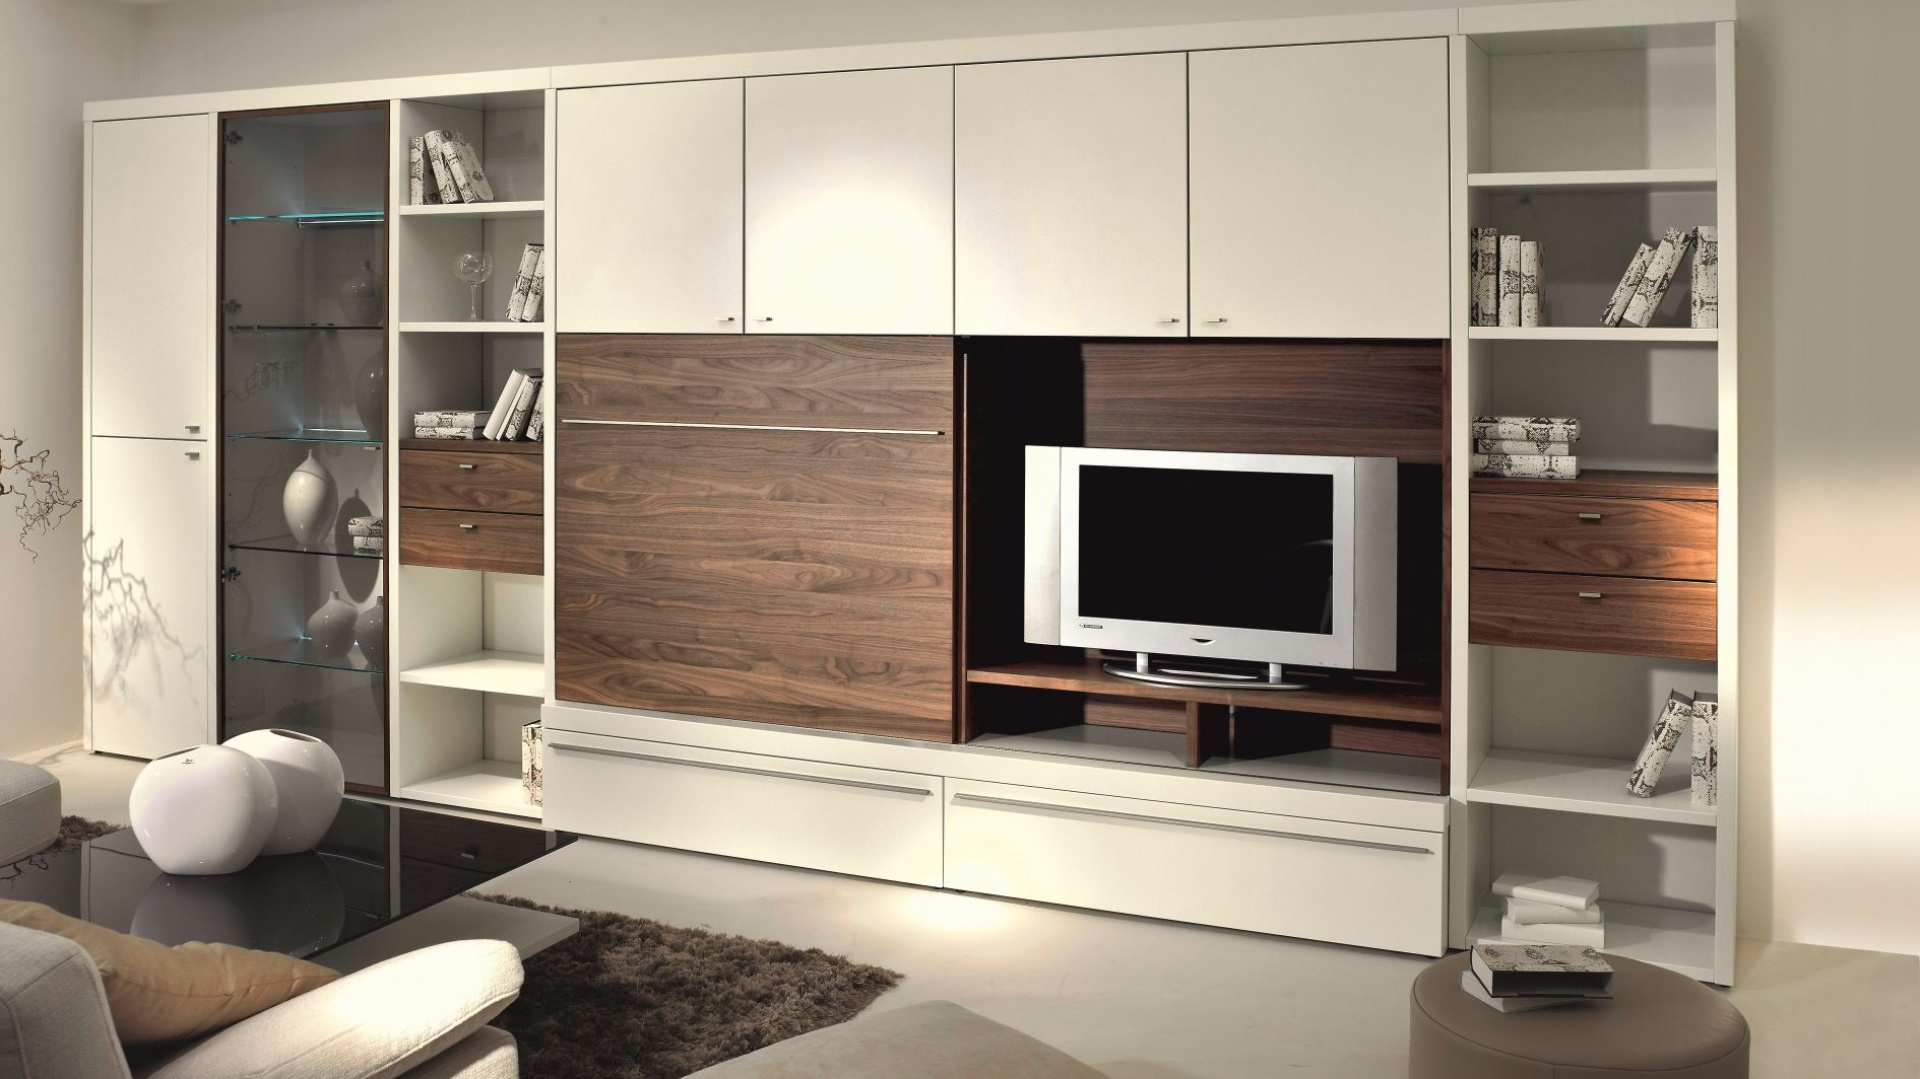 meblo cianka encado ii bia e meble ocieplone drewnem. Black Bedroom Furniture Sets. Home Design Ideas